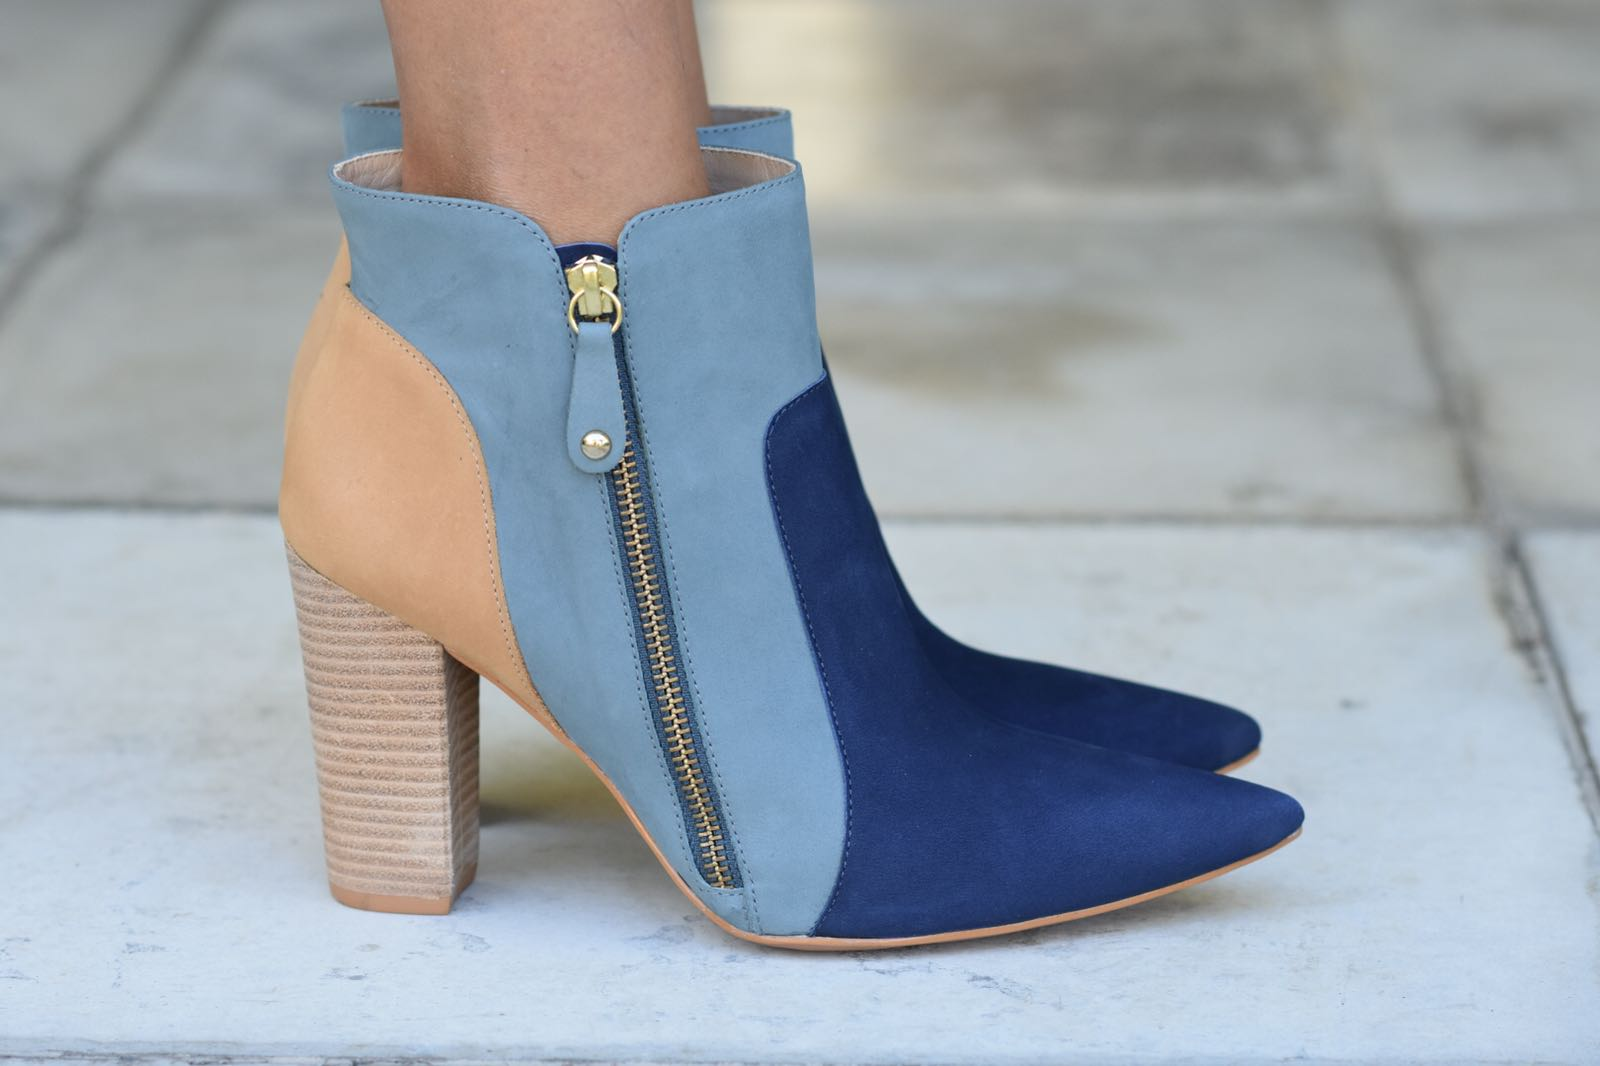 Botas Degradé Azul